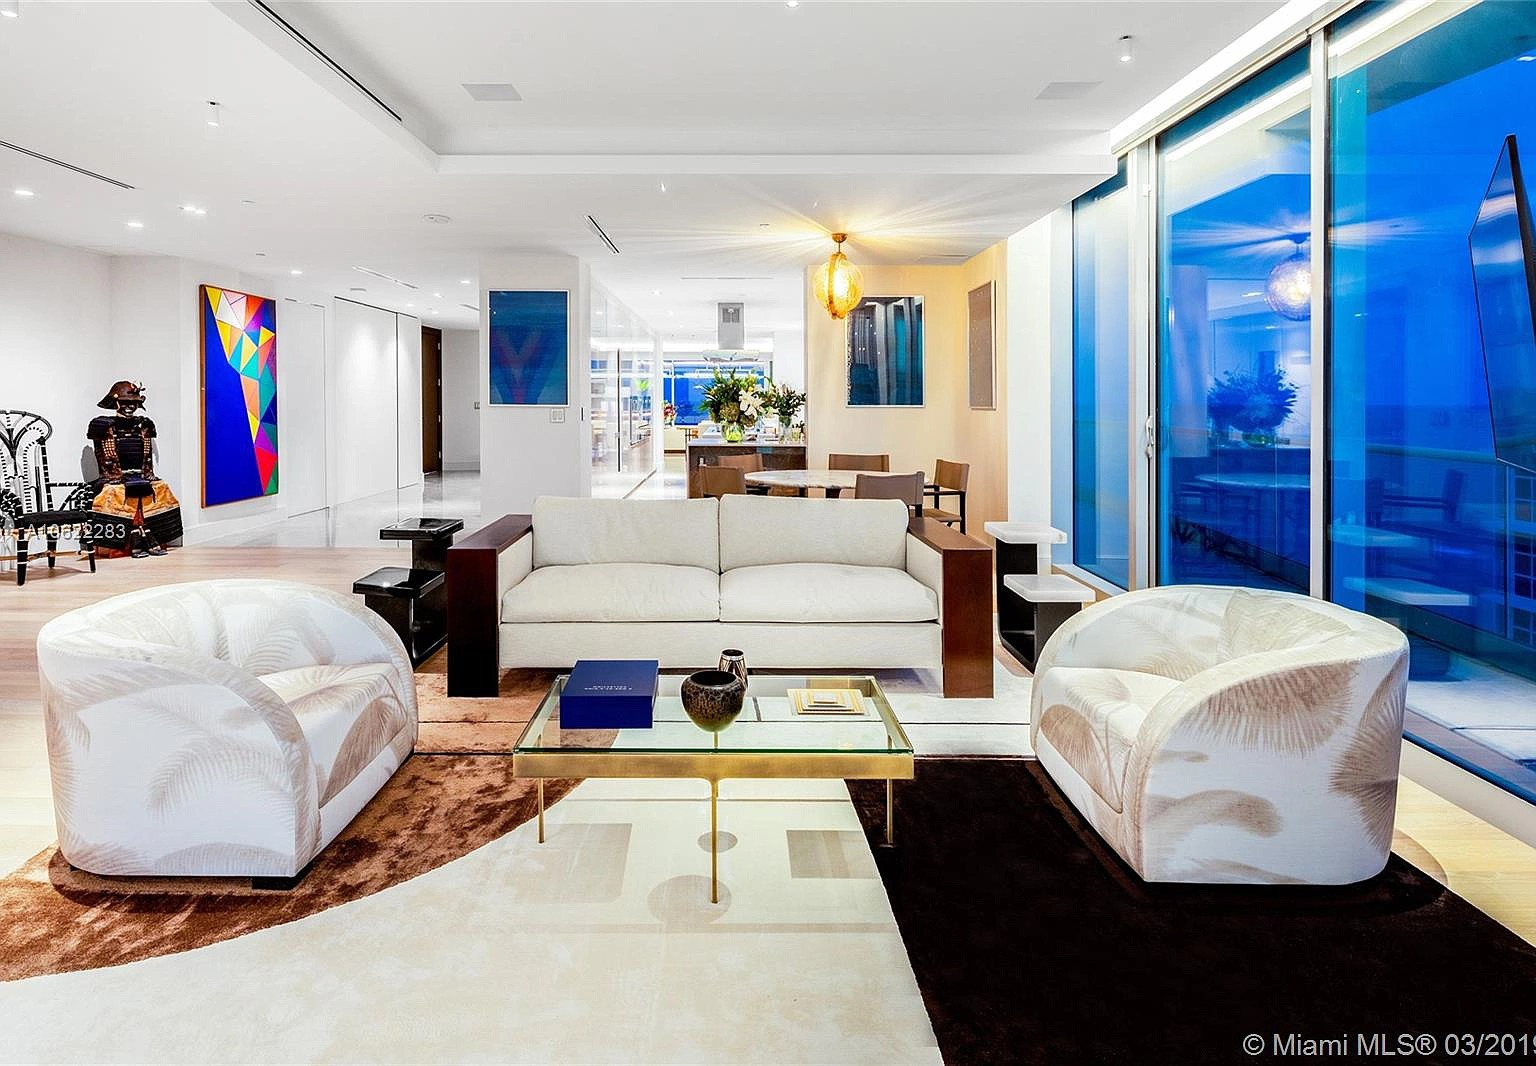 9349 Collins Ave APT 1106, Surfside, FL 33154 - $16,800,000 home for sale, house images, photos and pics gallery